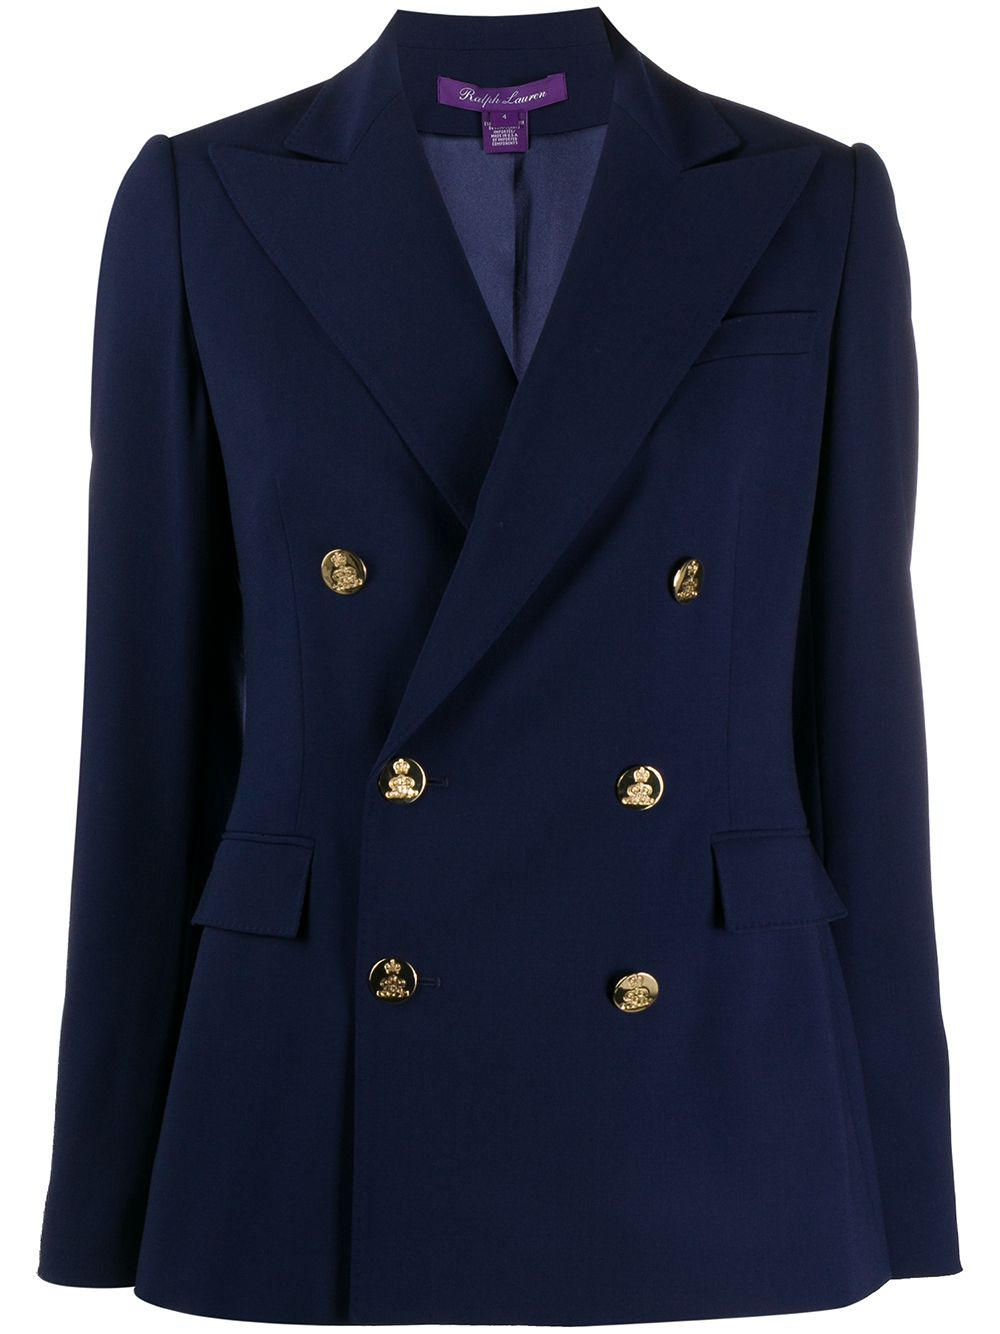 Ralph Lauren Collection tailored double-breasted blazer - Blue von Ralph Lauren Collection